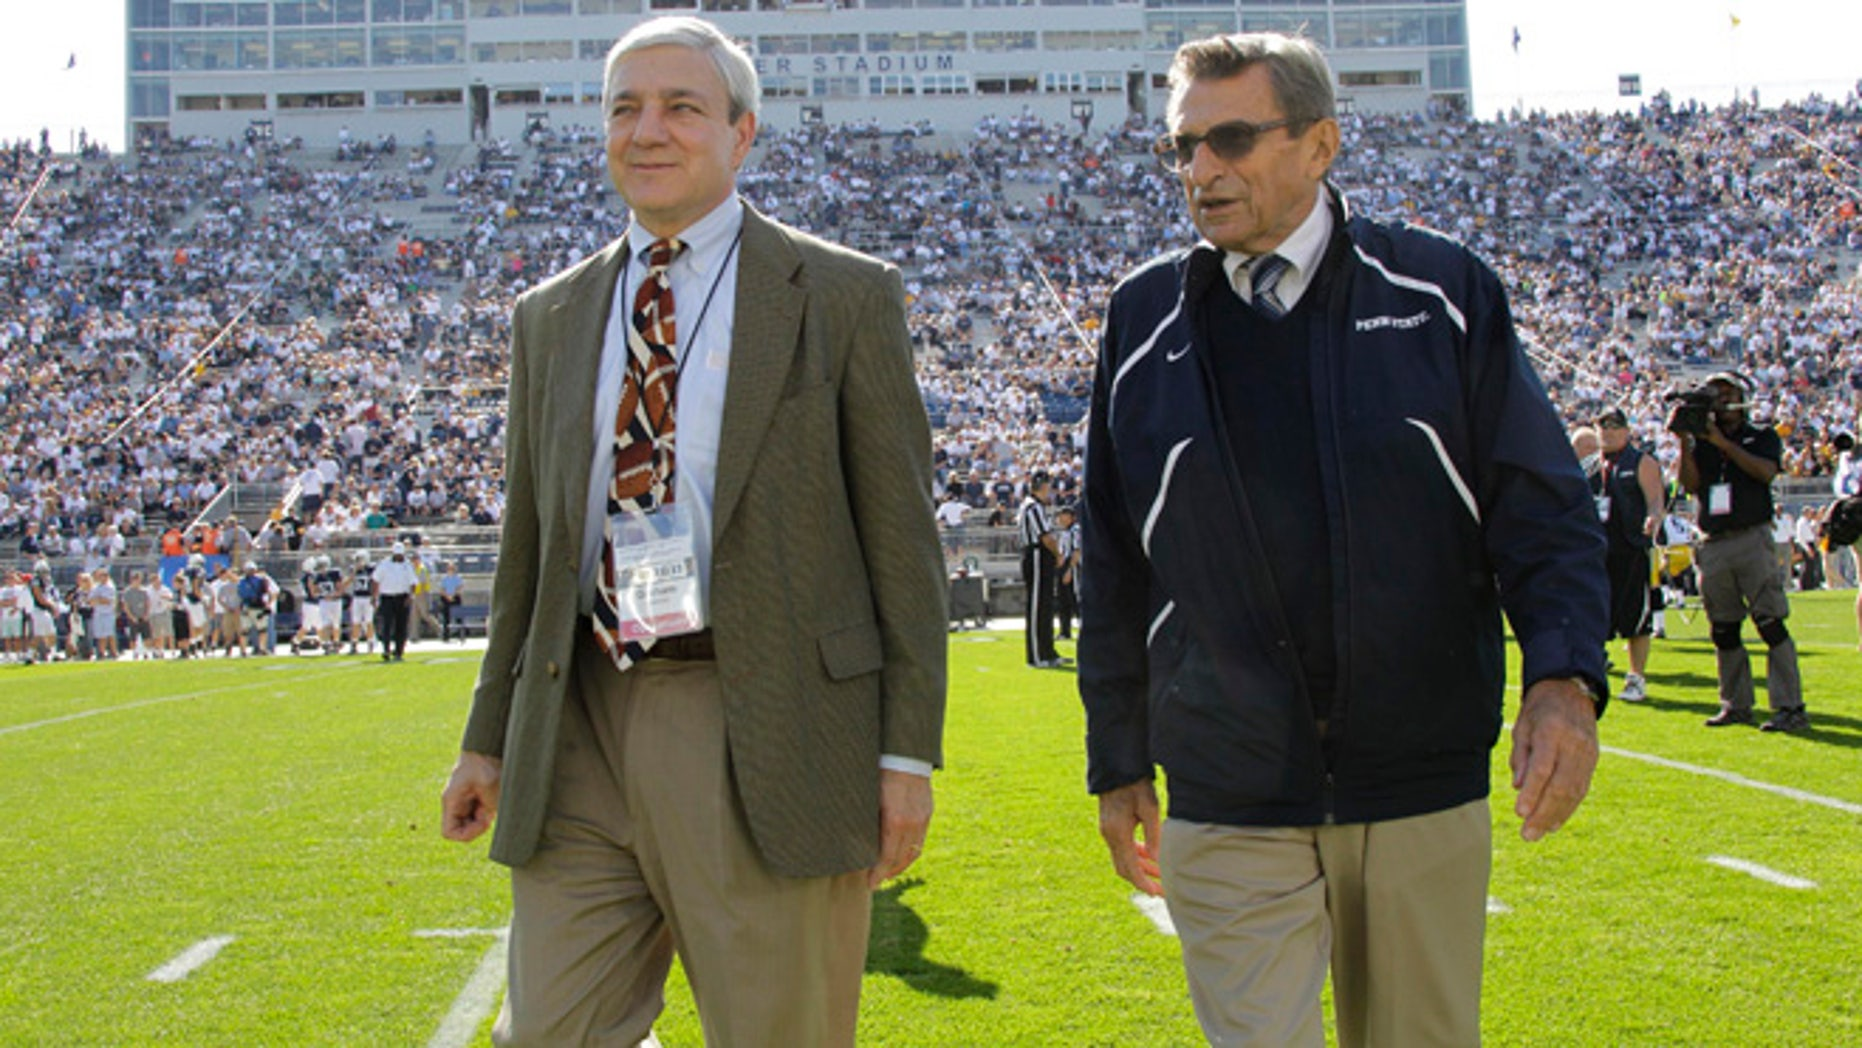 Oct. 8, 2011: This file photo shows Penn State president Graham Spanier, left, and head football coach Joe Paterno before a college football game against Iowa in State College, Pa.